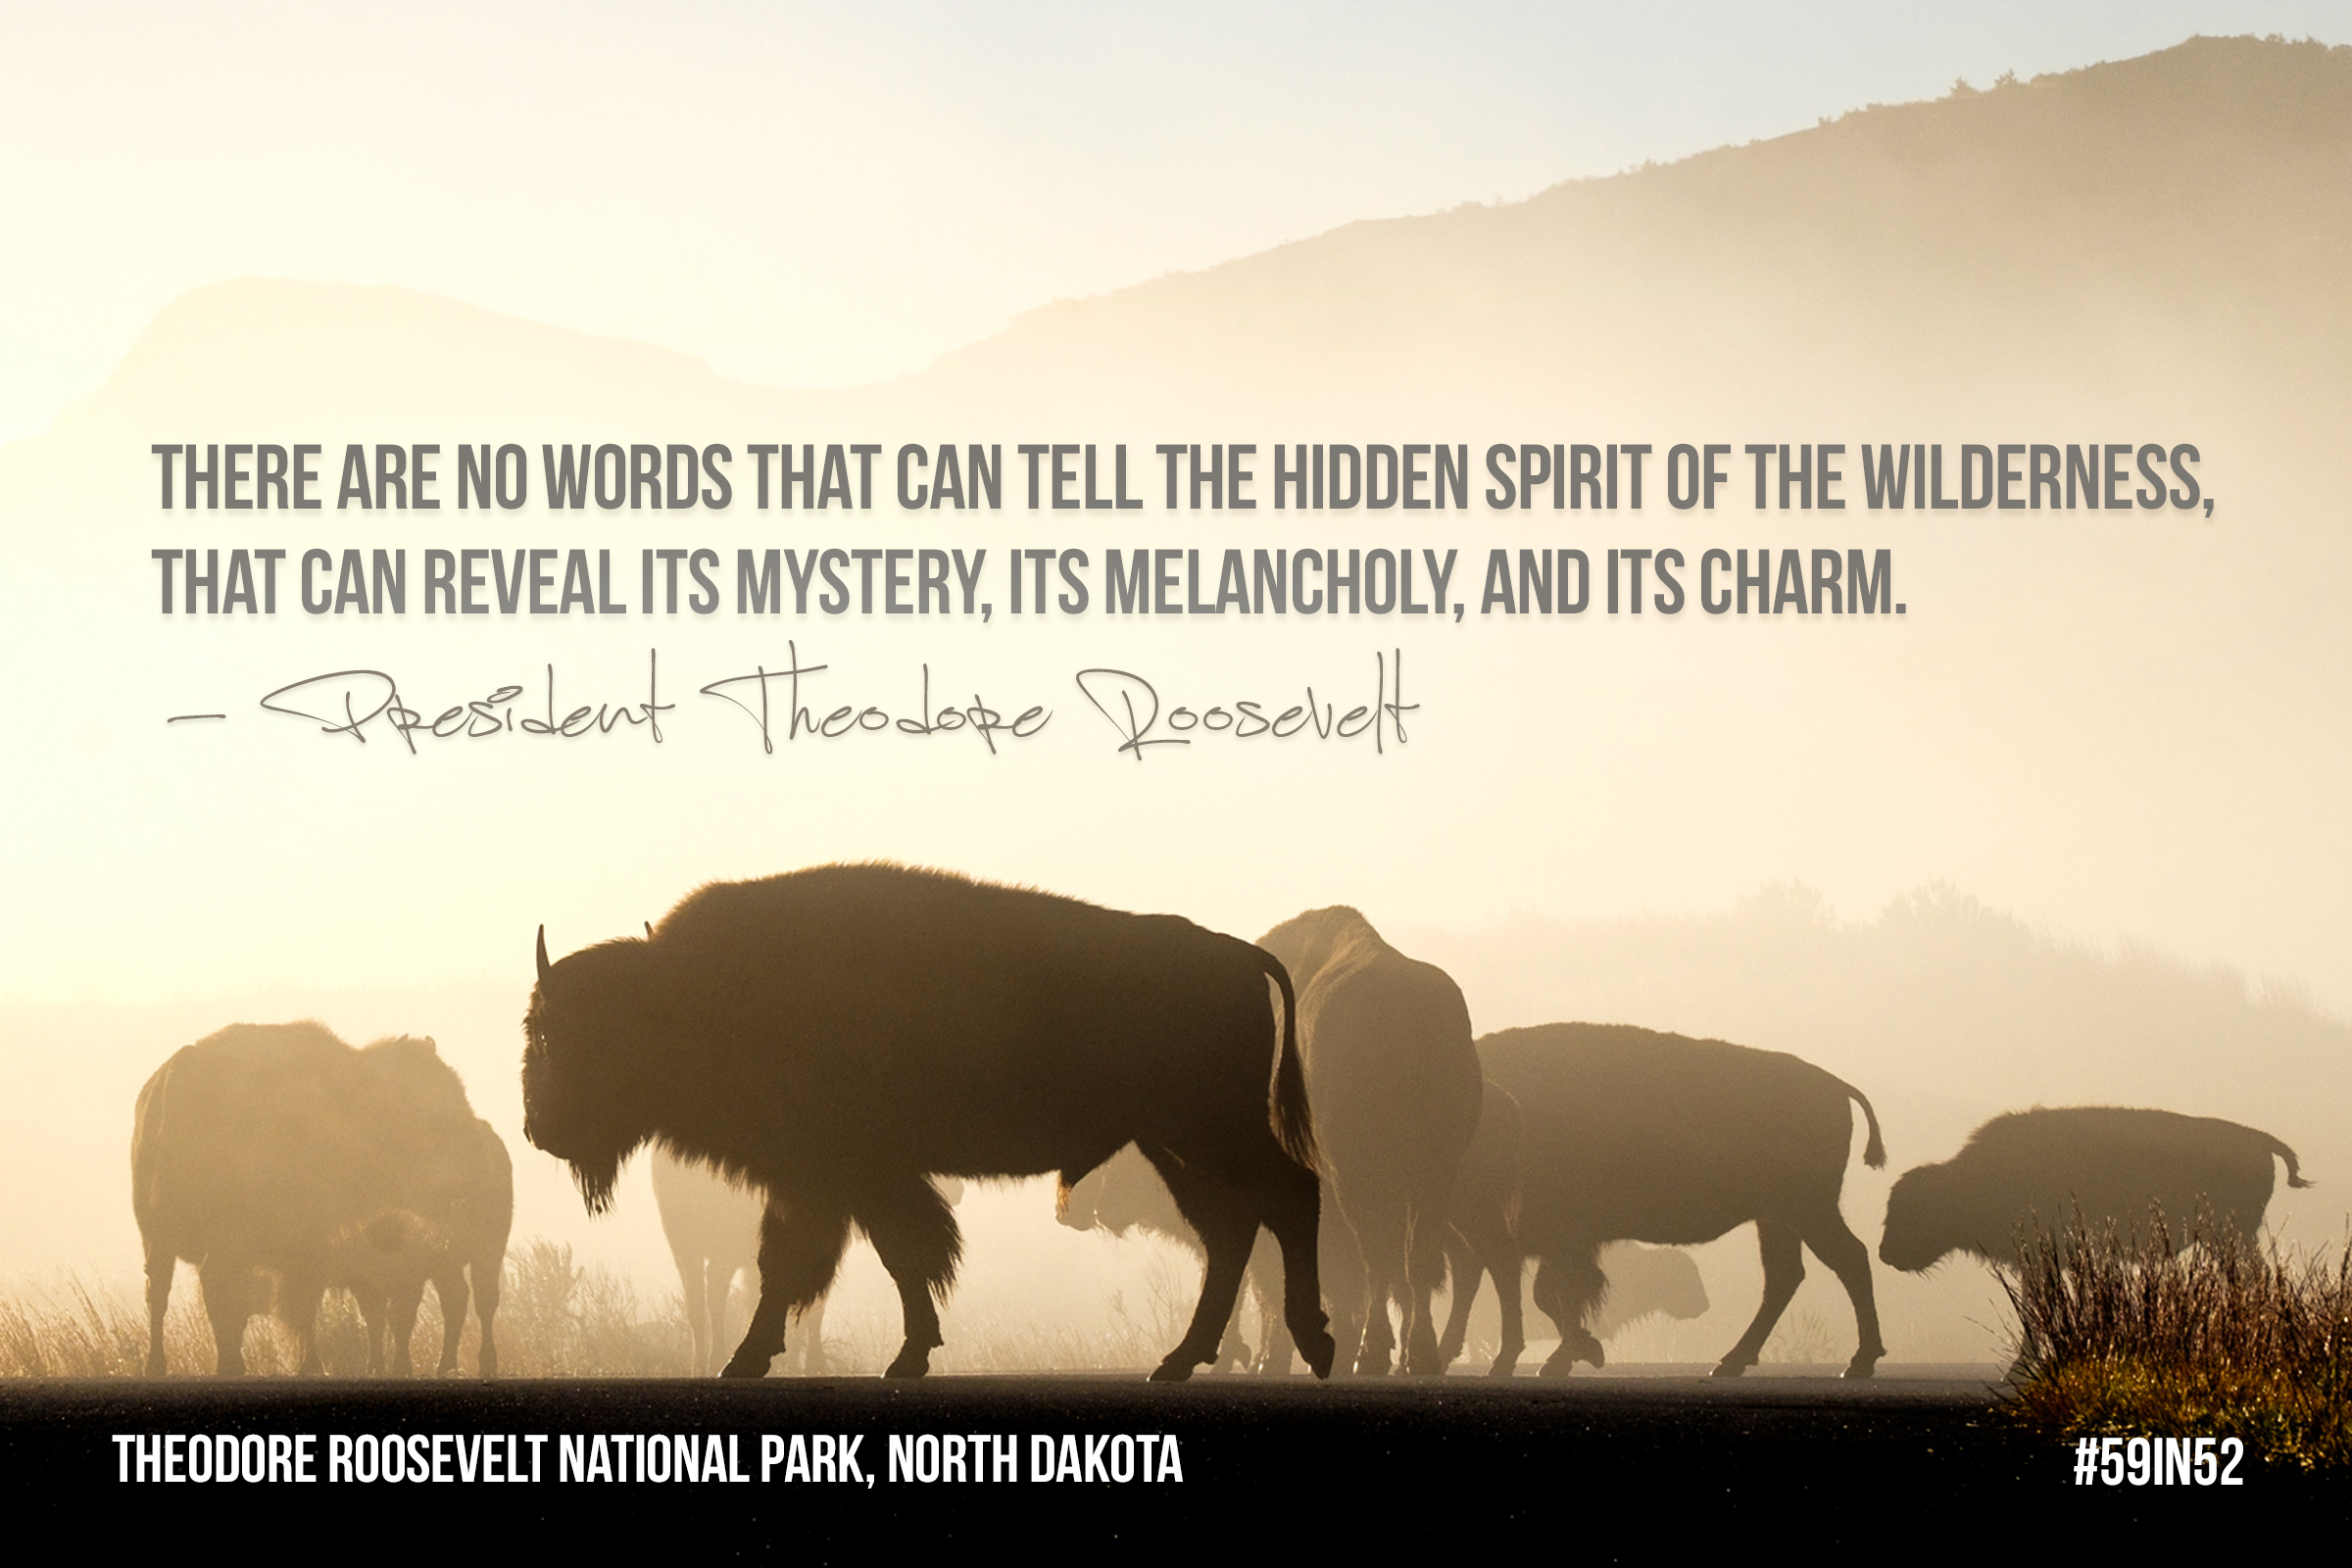 """""""There are no words that can tell the hidden spirit of the wilderness, that can reveal its mystery, its melancholy, its charm."""" - President Theodore Roosevelt"""